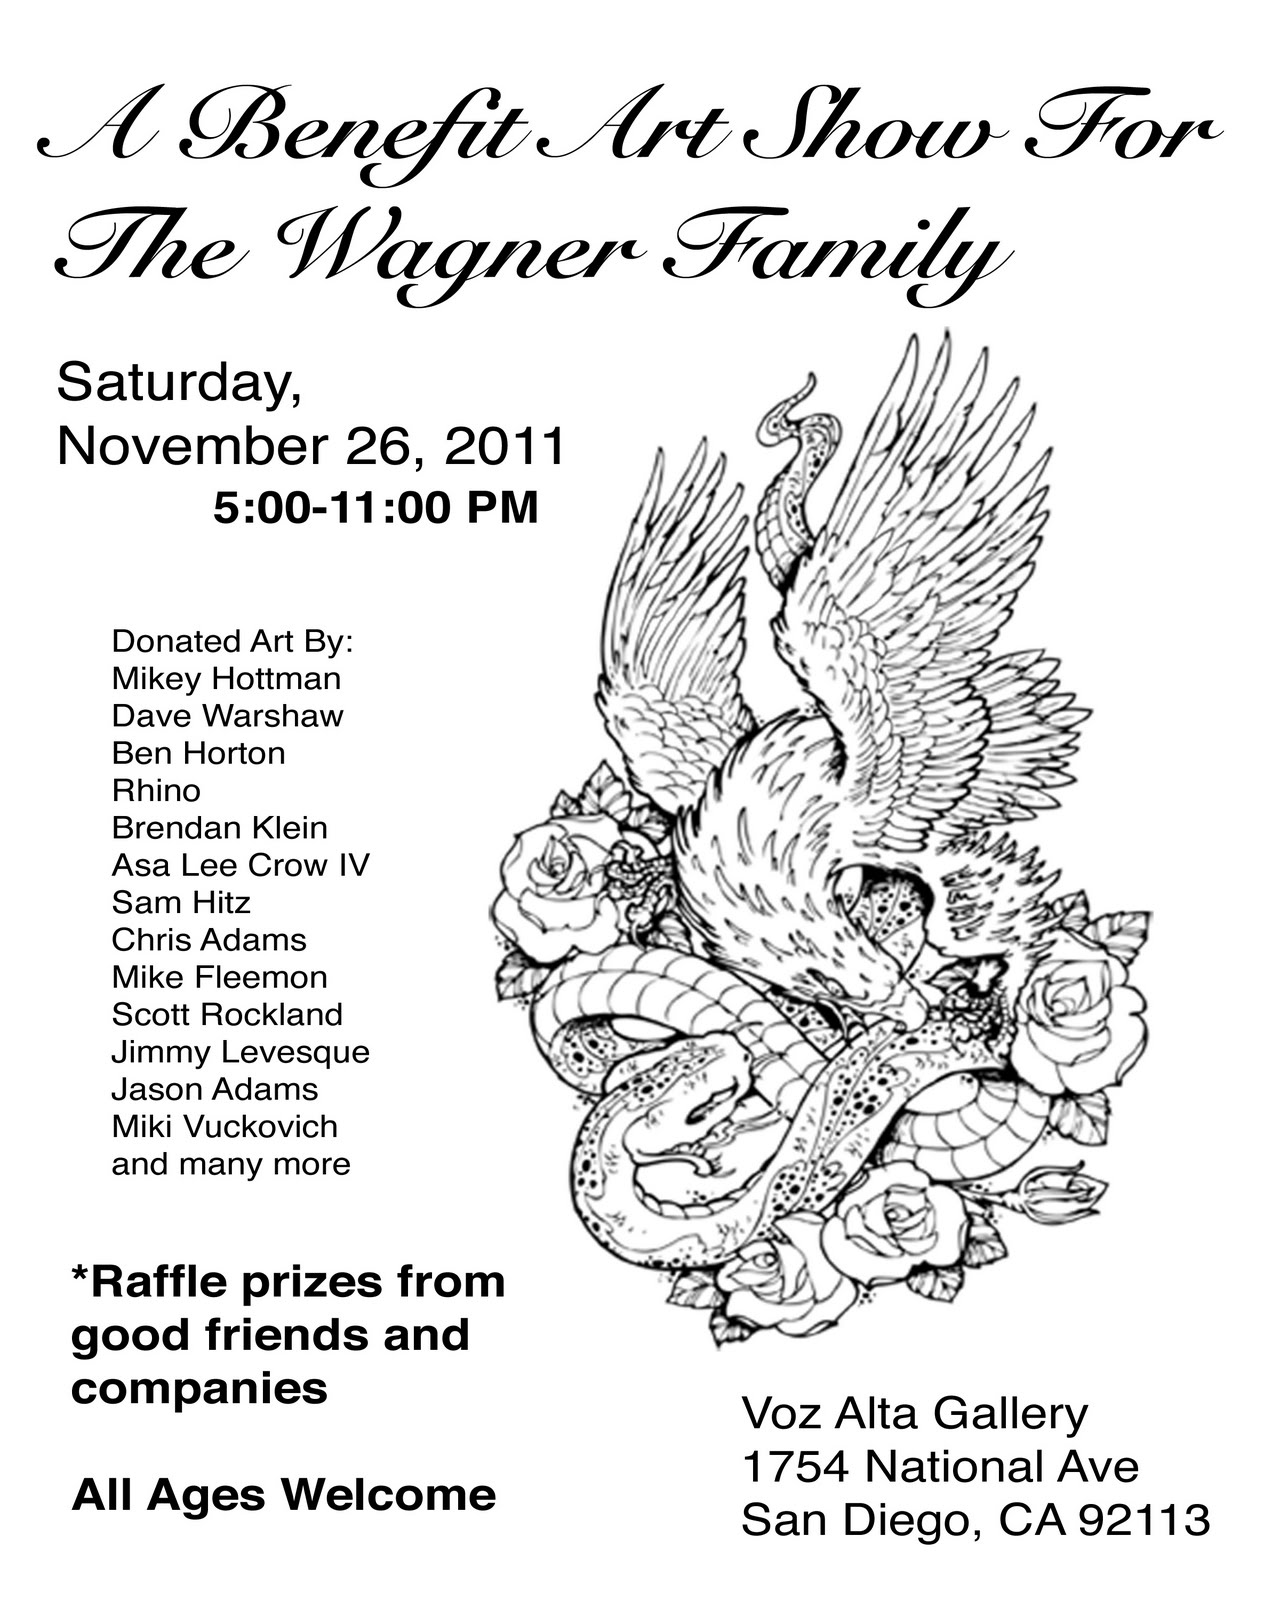 mikey hottman: Benefit Art Show for the Wagner Family